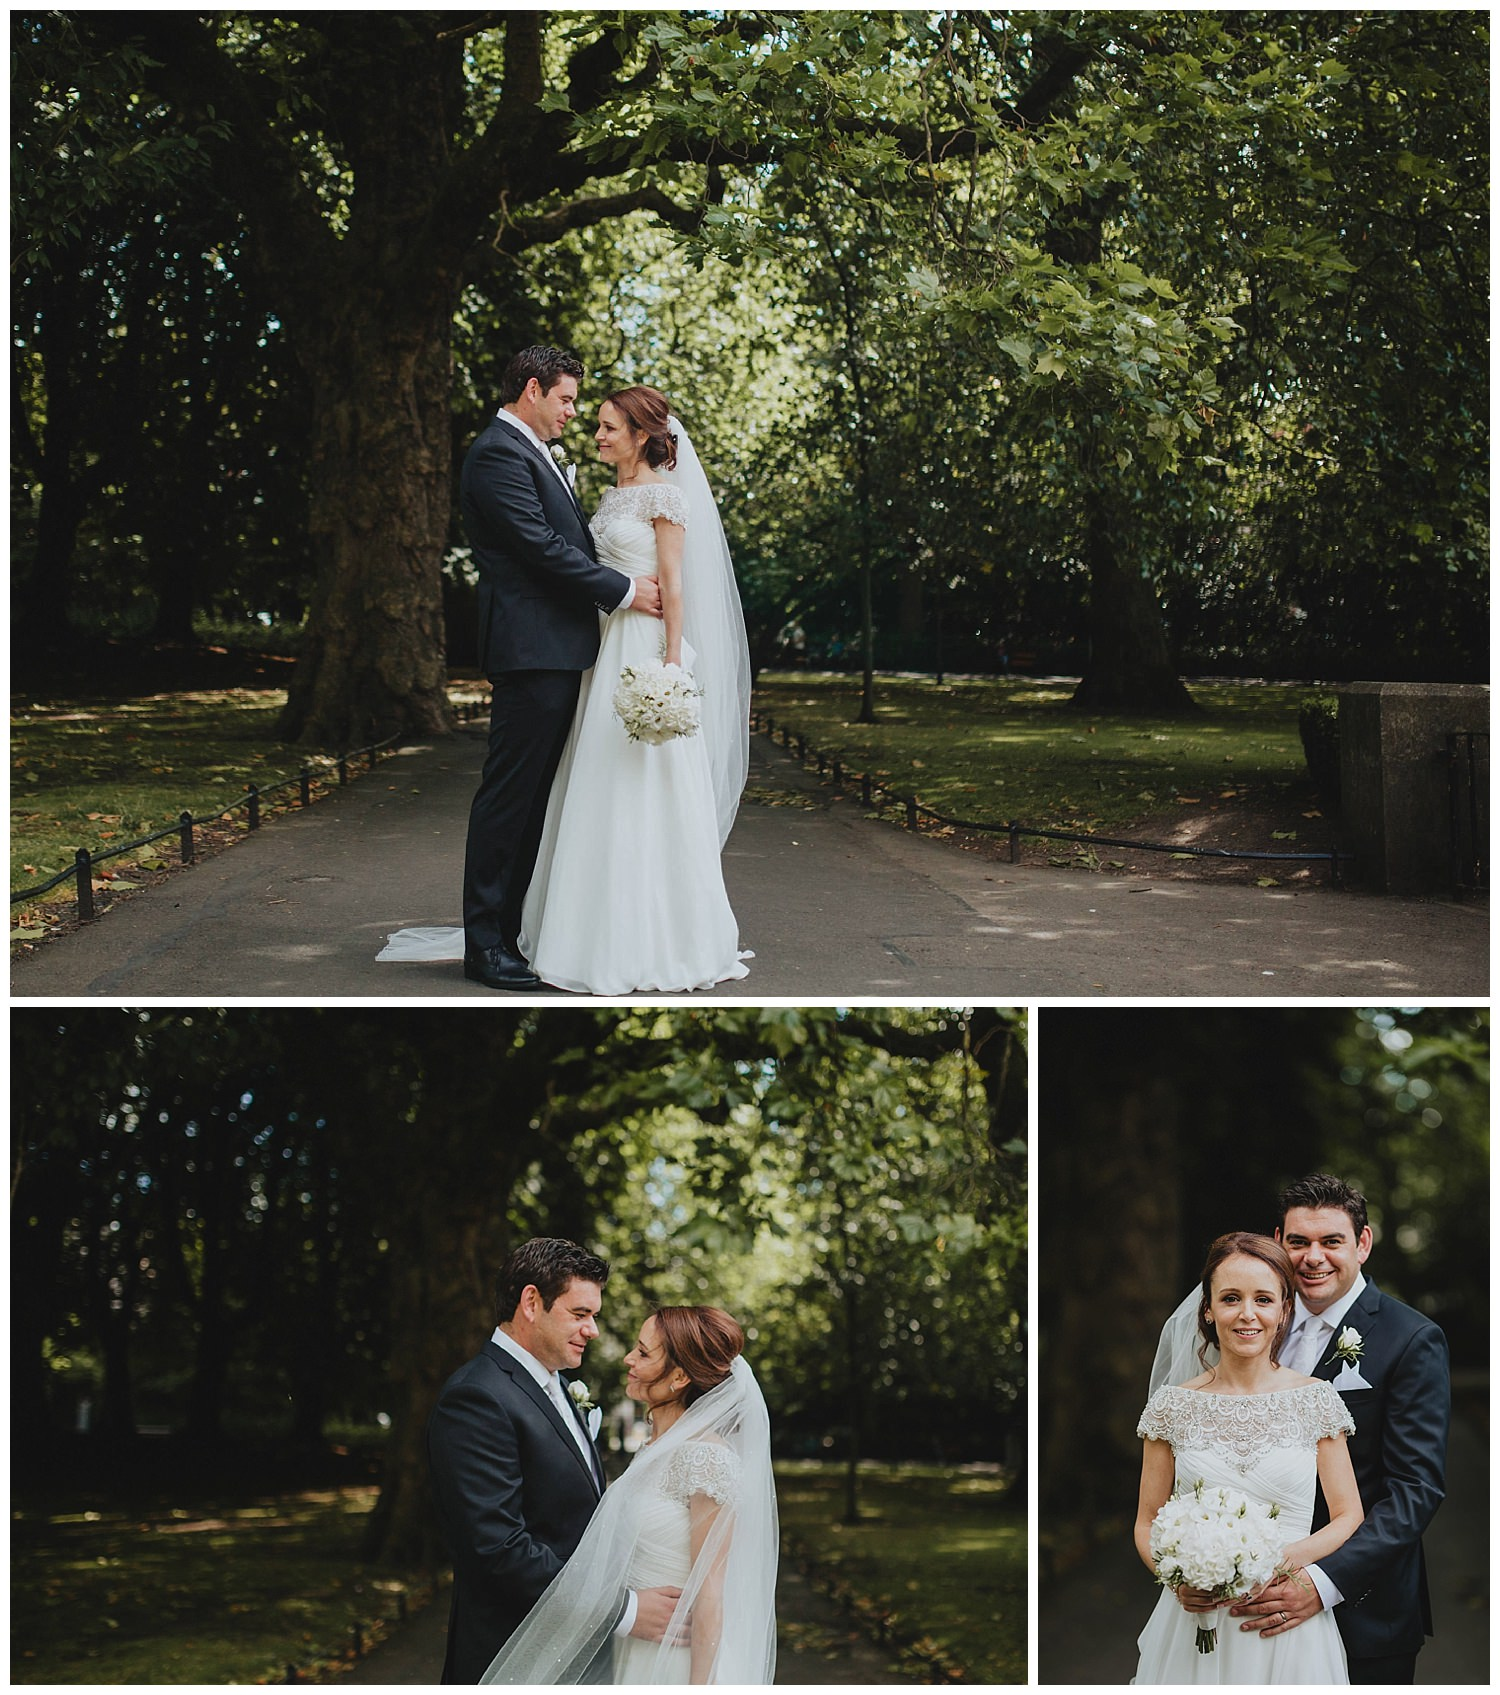 g+j_westbury_documentary_dublin_city_wedding_photographer30.jpg